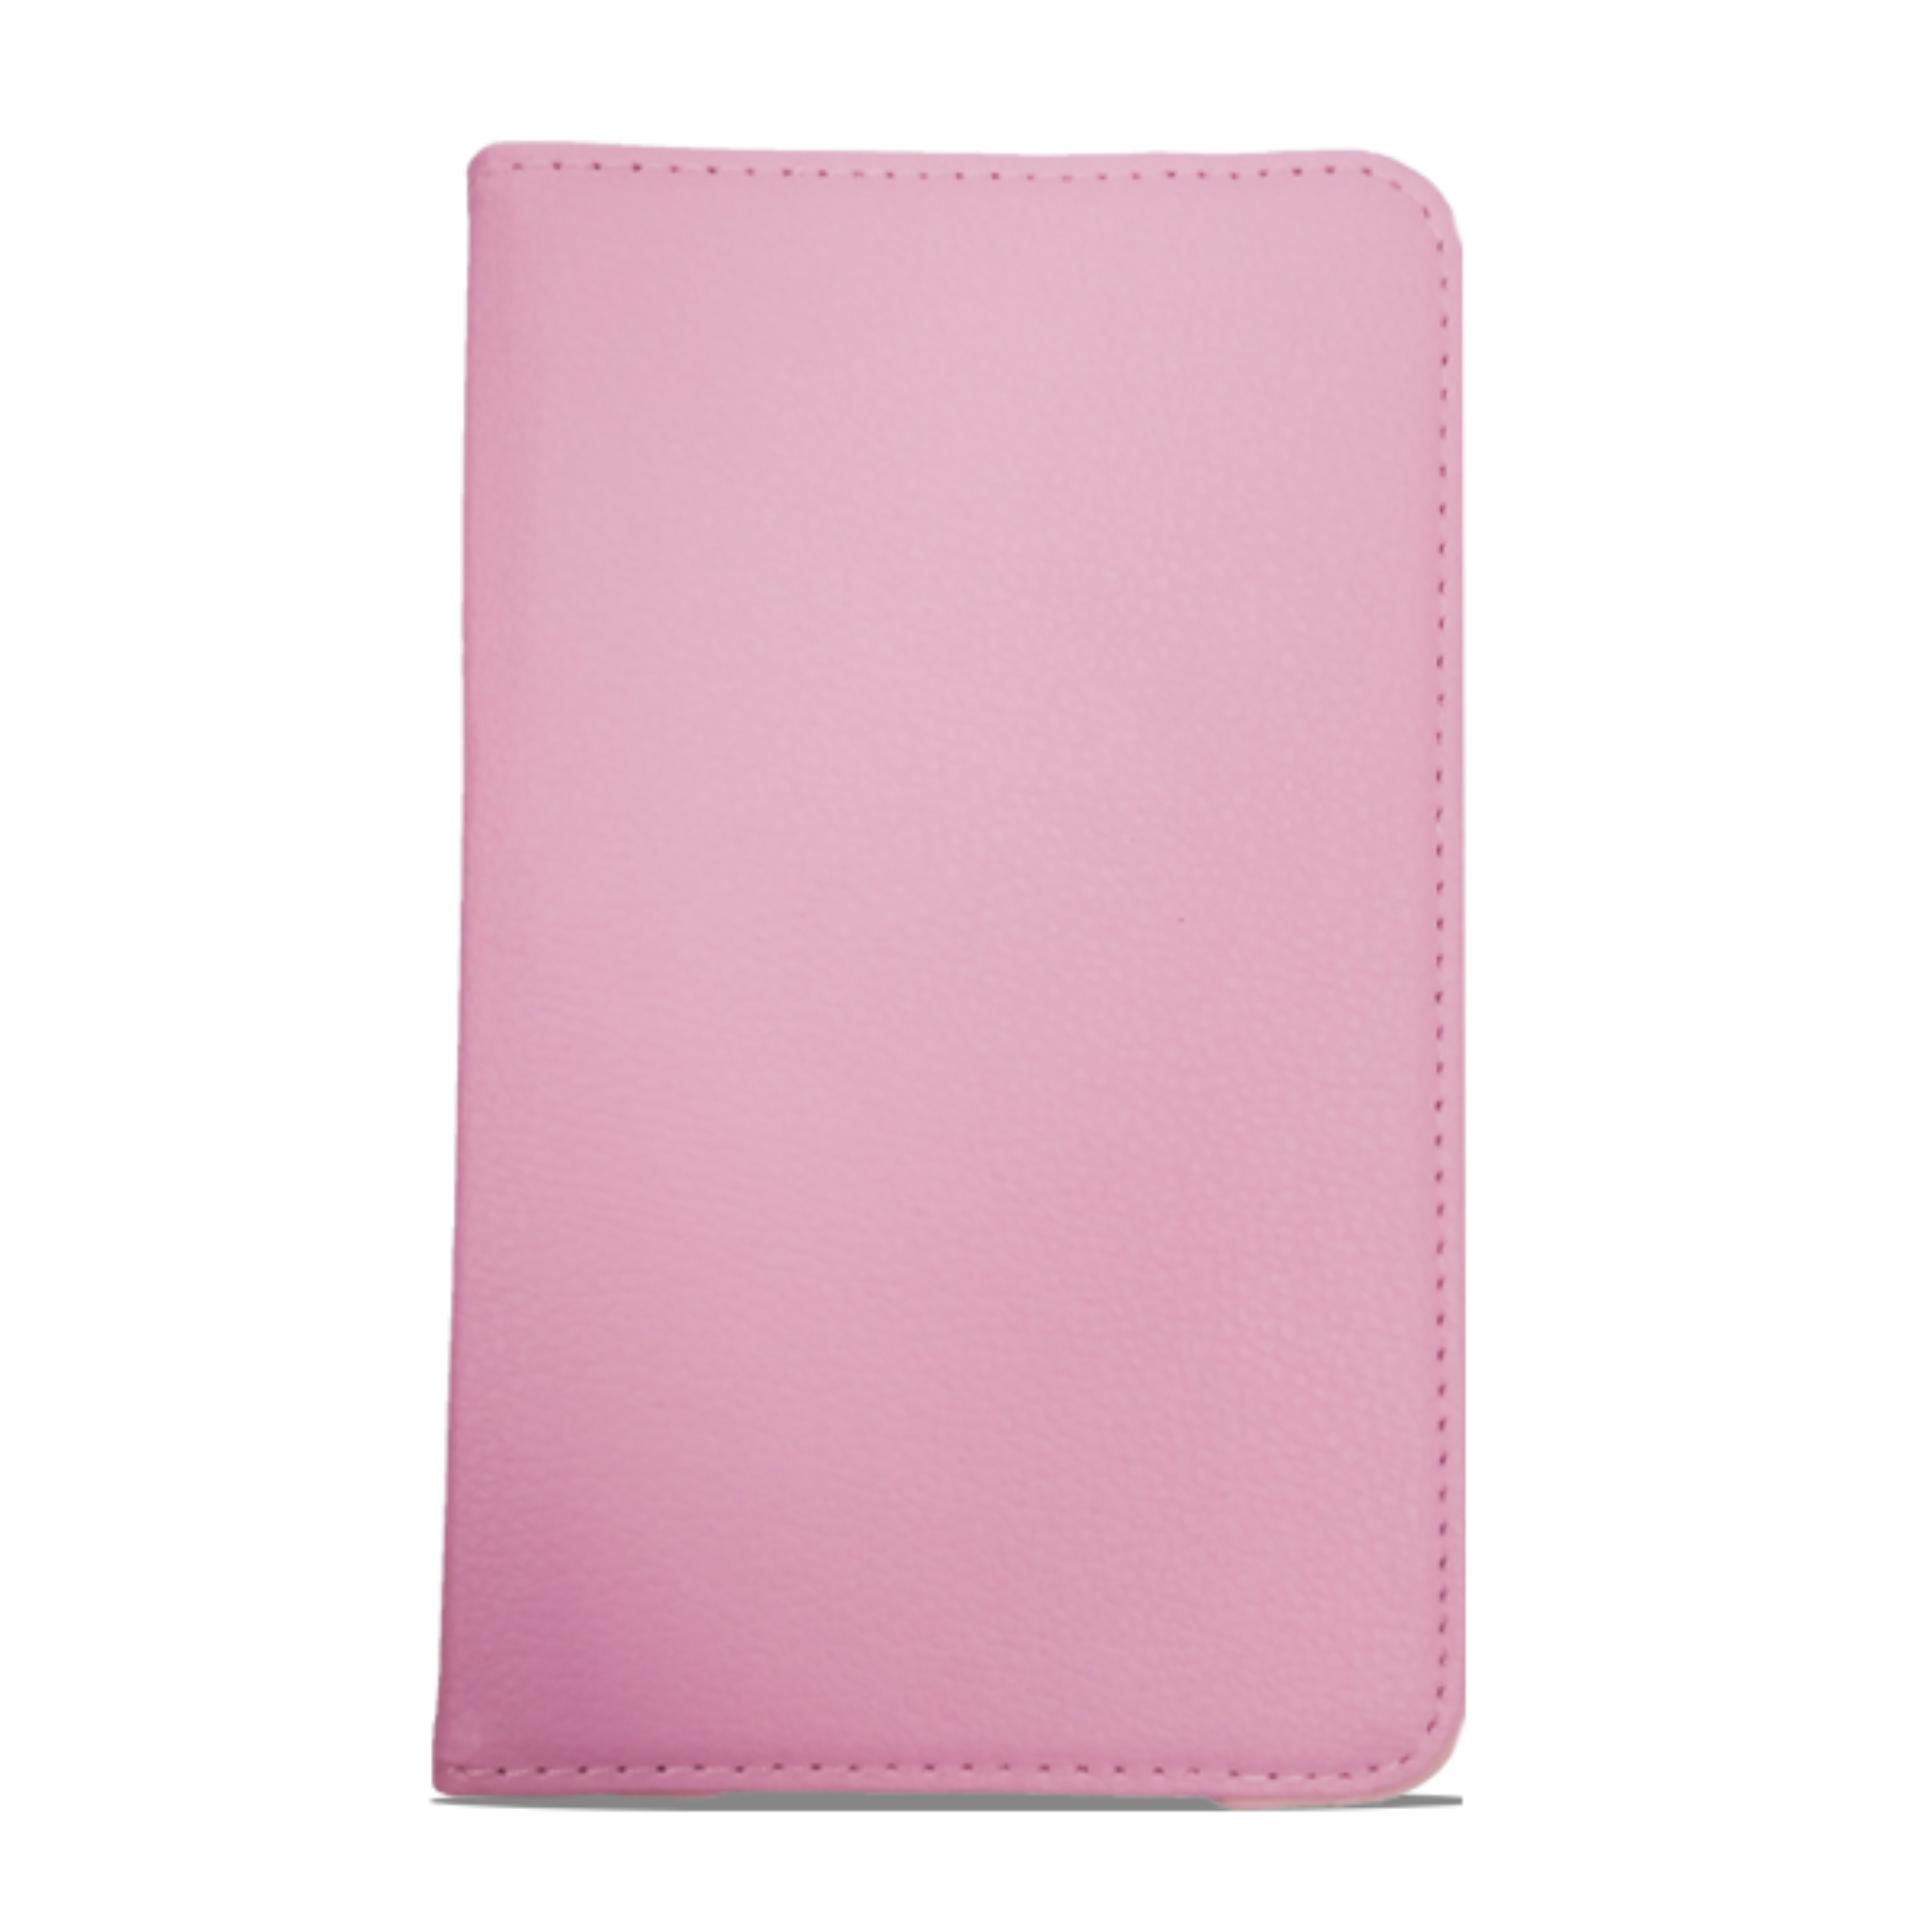 Ume Phone Cover For Advan Vandroid S4t Flip Shell Source · Advan S4T .